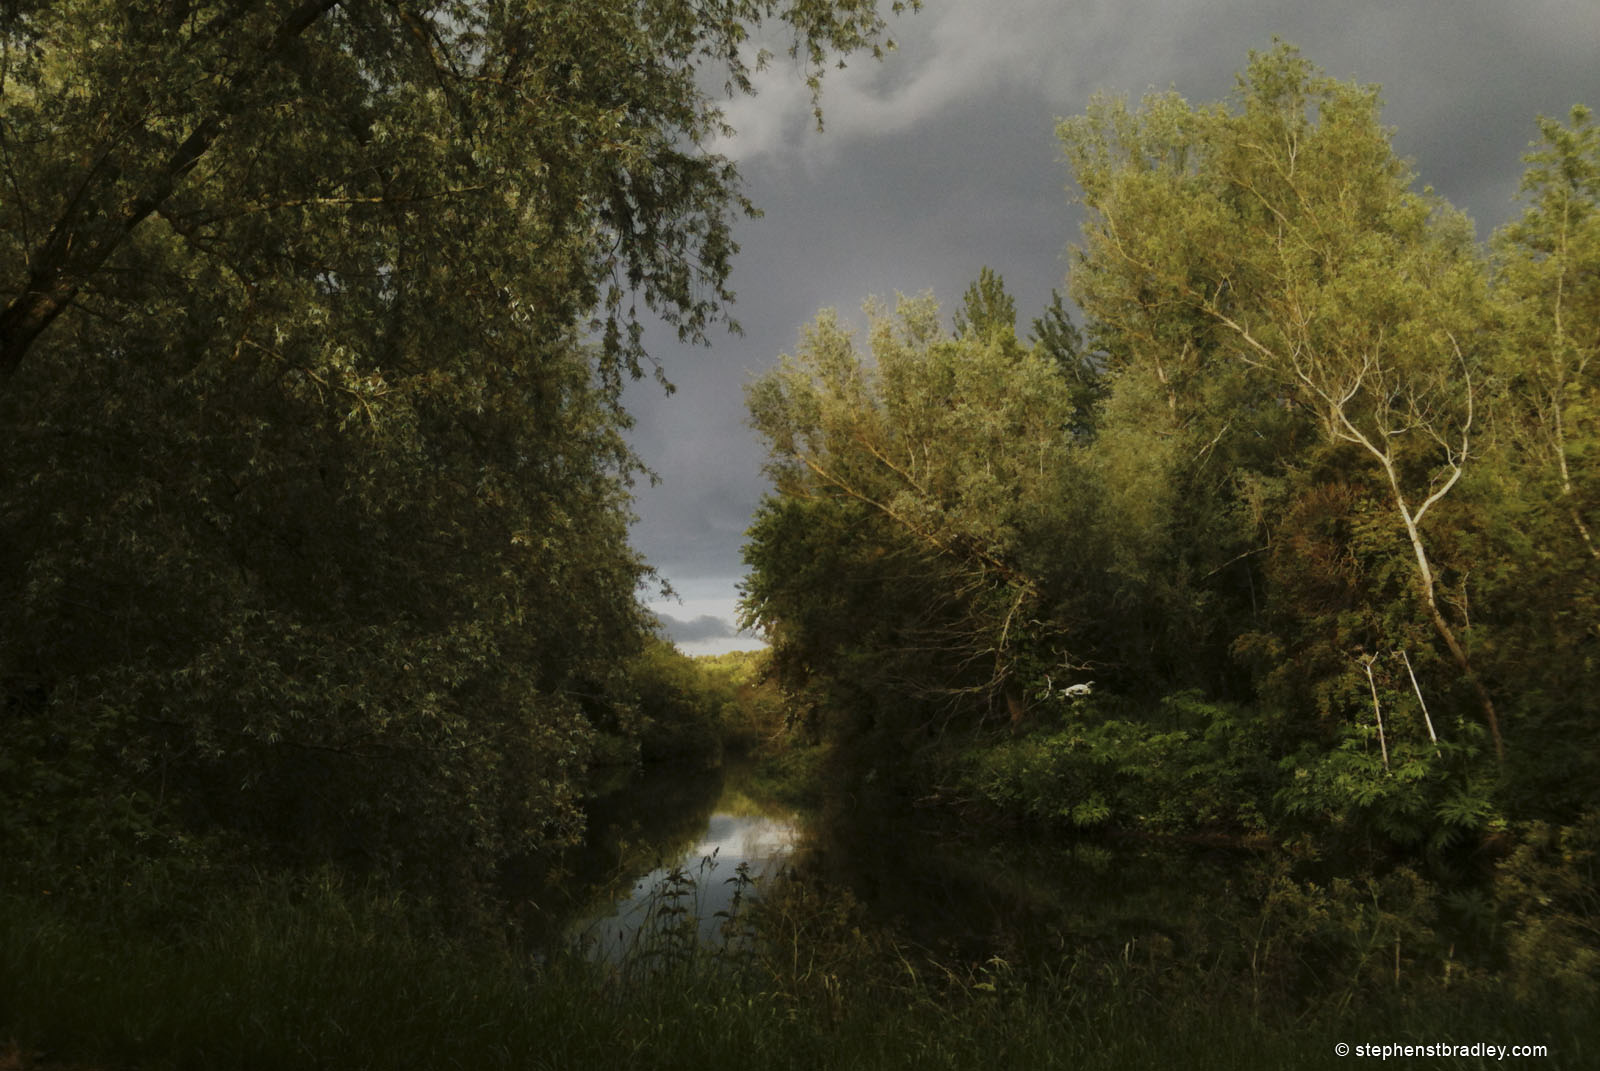 Landscape photograph of the Lagan Tow Path , Northern Ireland, by Stephen Bradley photographer - photograph 2508.